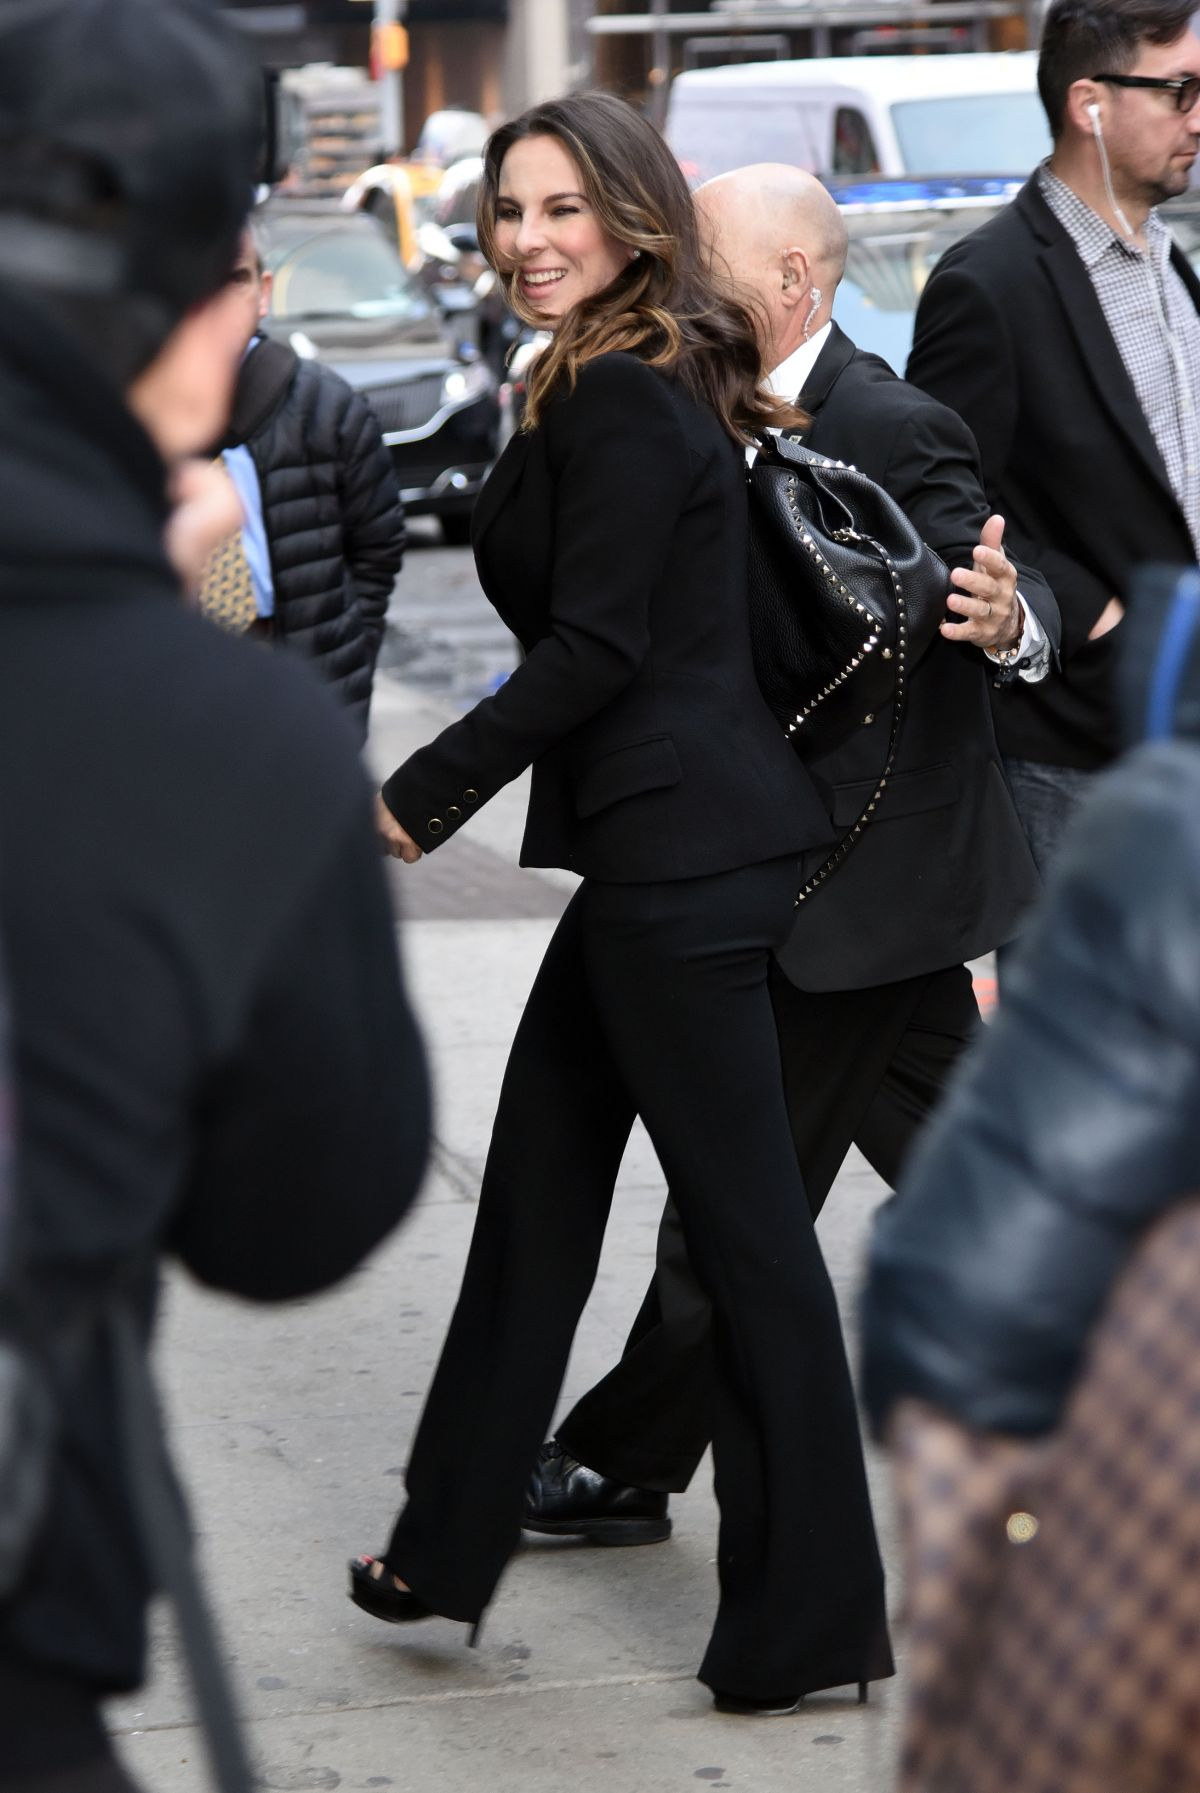 Kate del castillo arriving to appear on good morning america in nyc - 2019 year